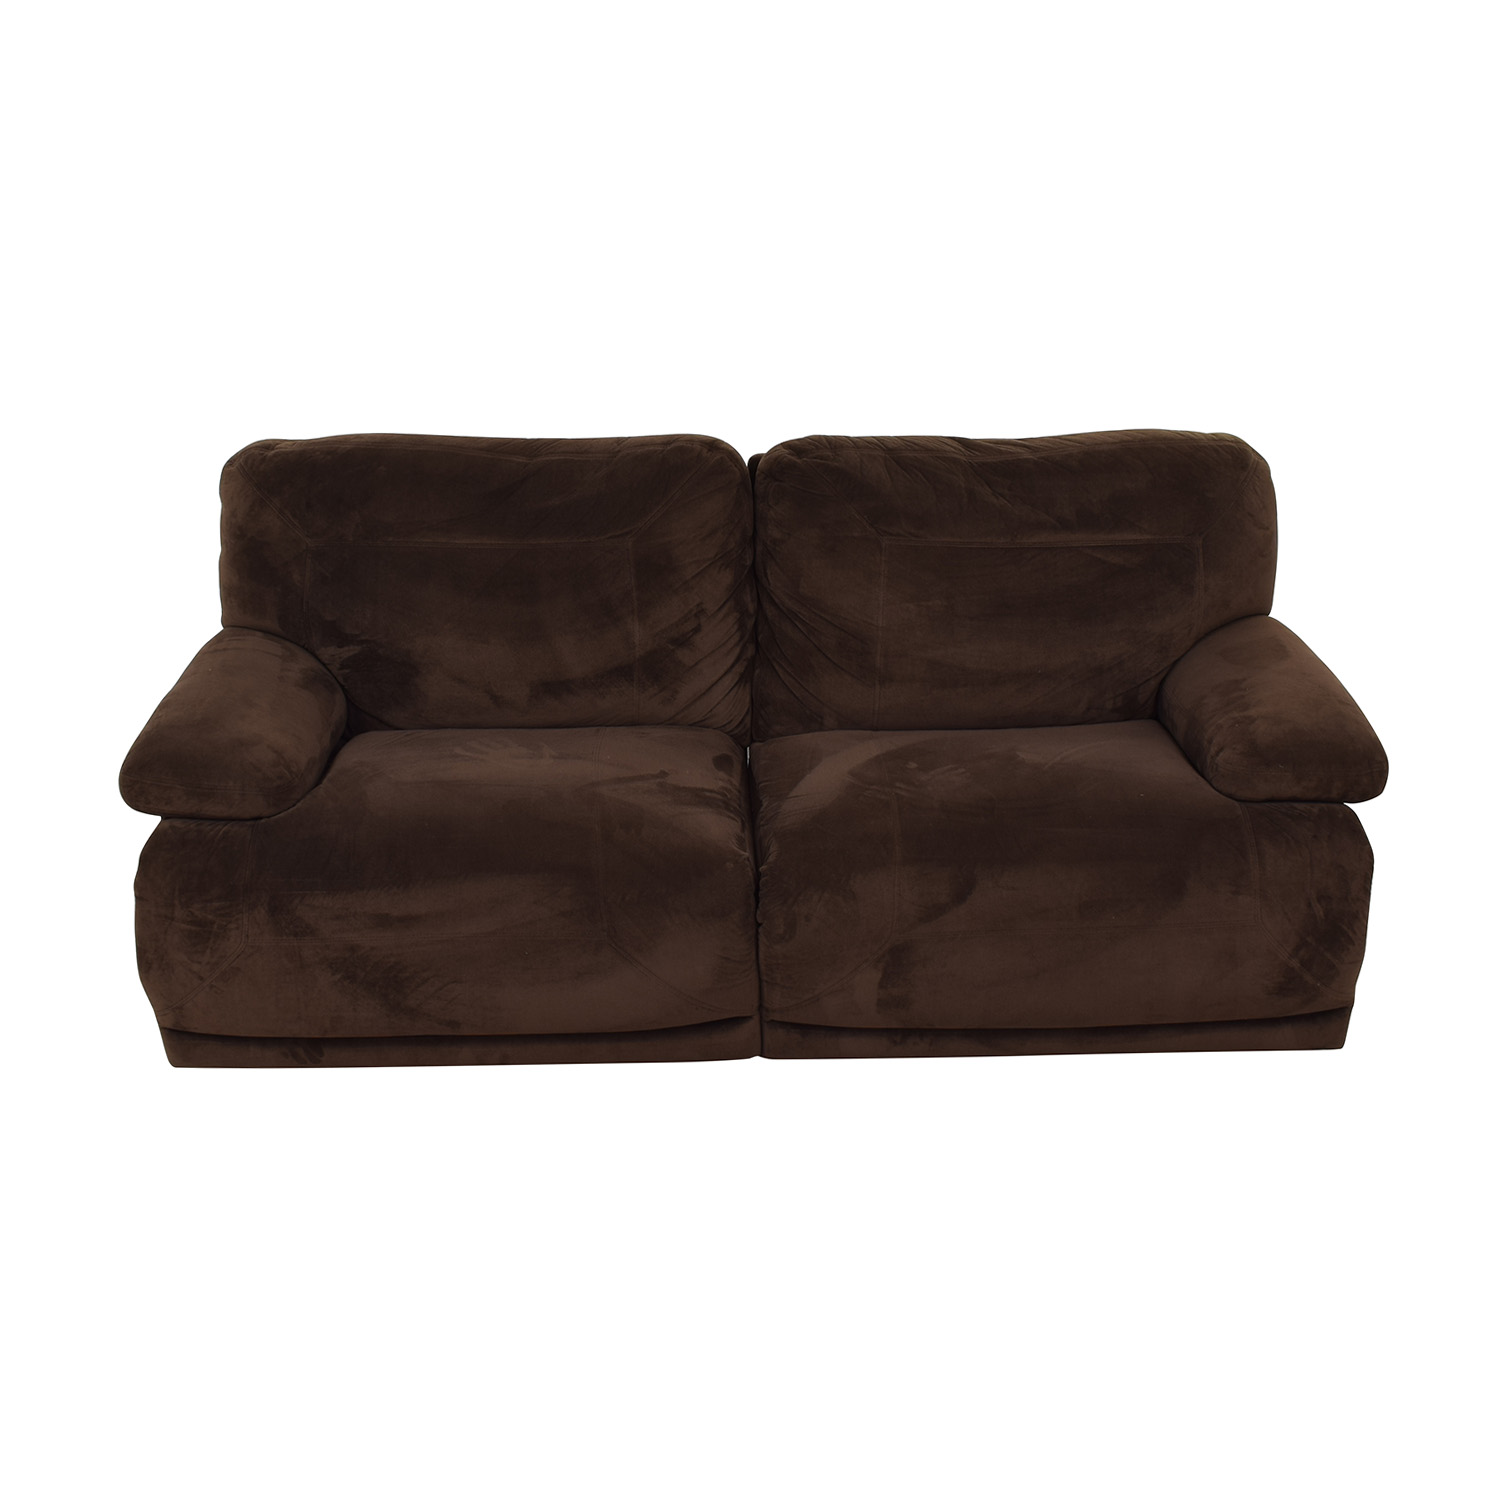 buy Macy's Brown Recliner Couch Macy's Sofas